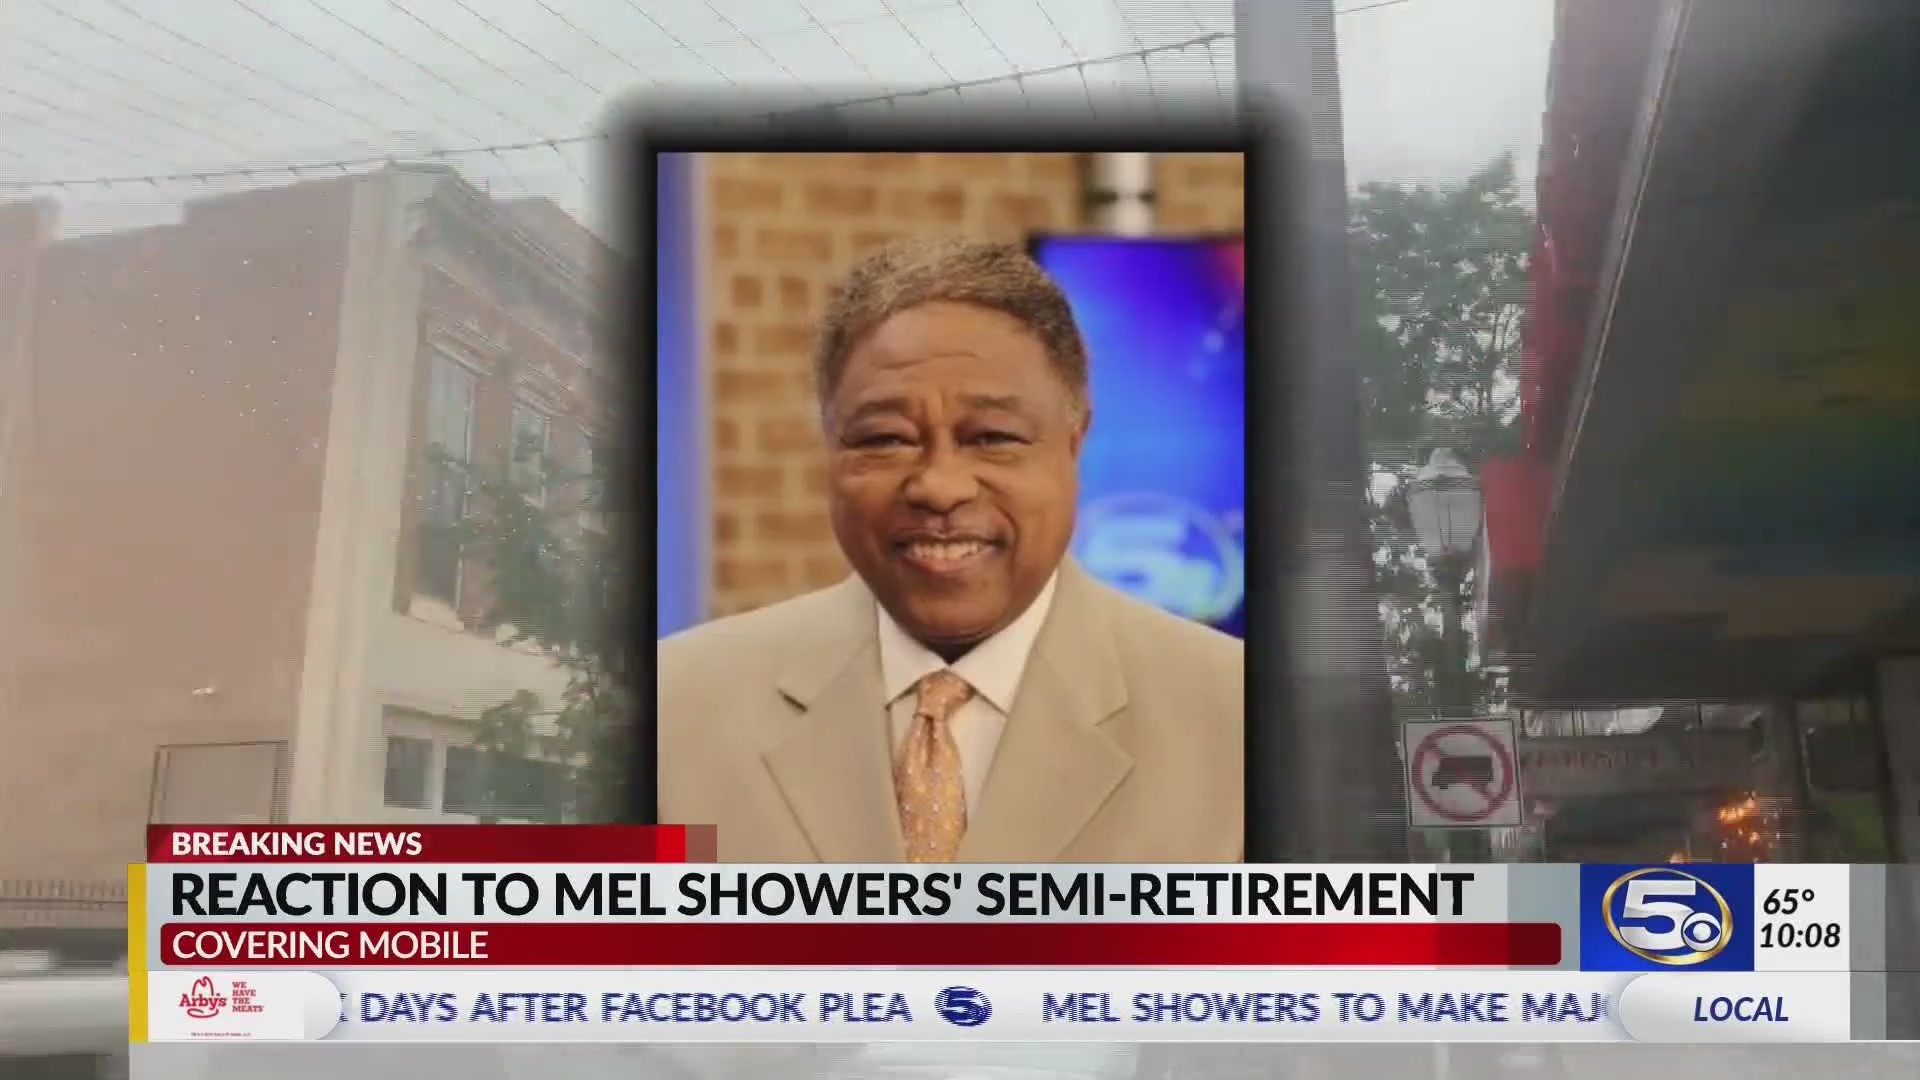 VIDEO: News 5 viewers wishing Mel Showers the best